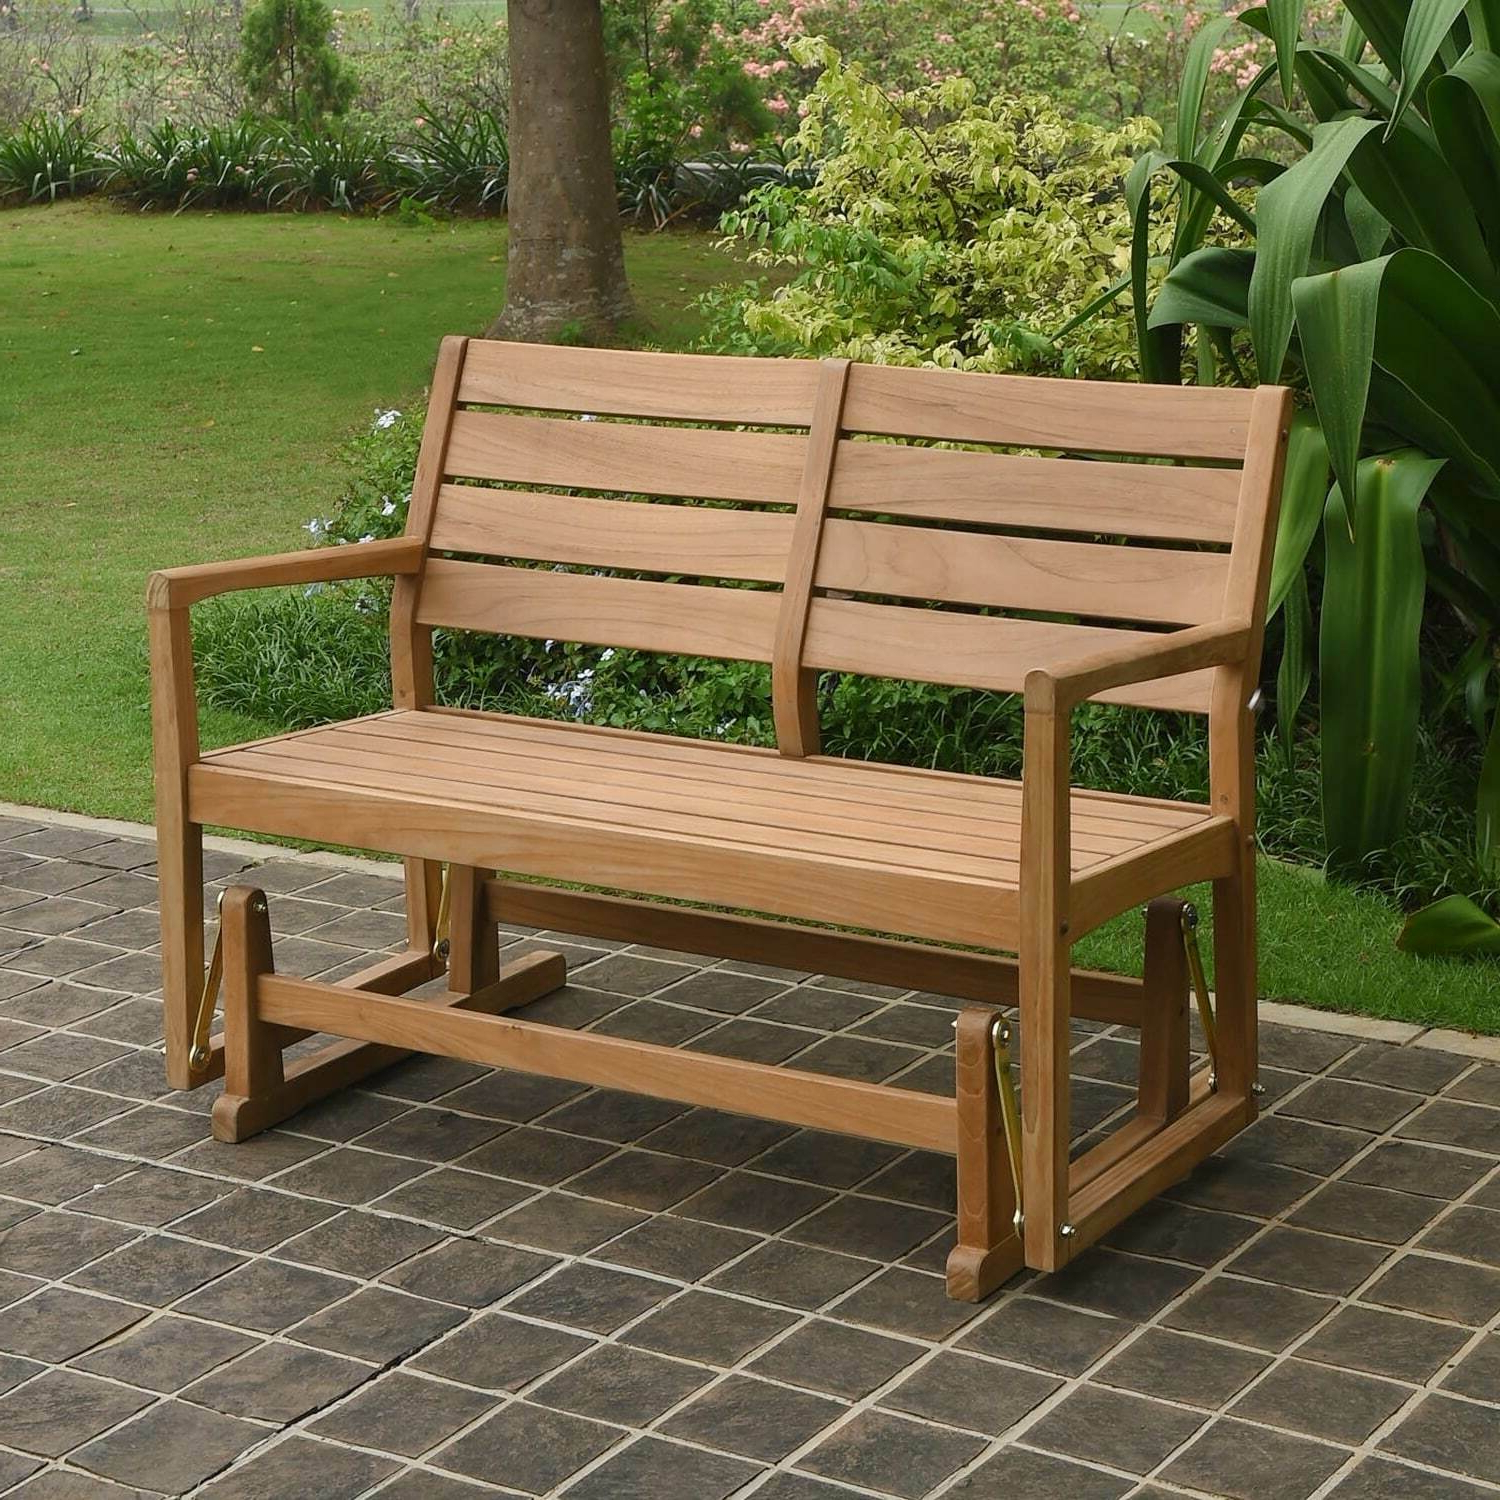 Favorite Teak Outdoor Glider Benches Intended For Cambridge Casual Andrea Teak Glider Bench Tan Single (View 17 of 30)